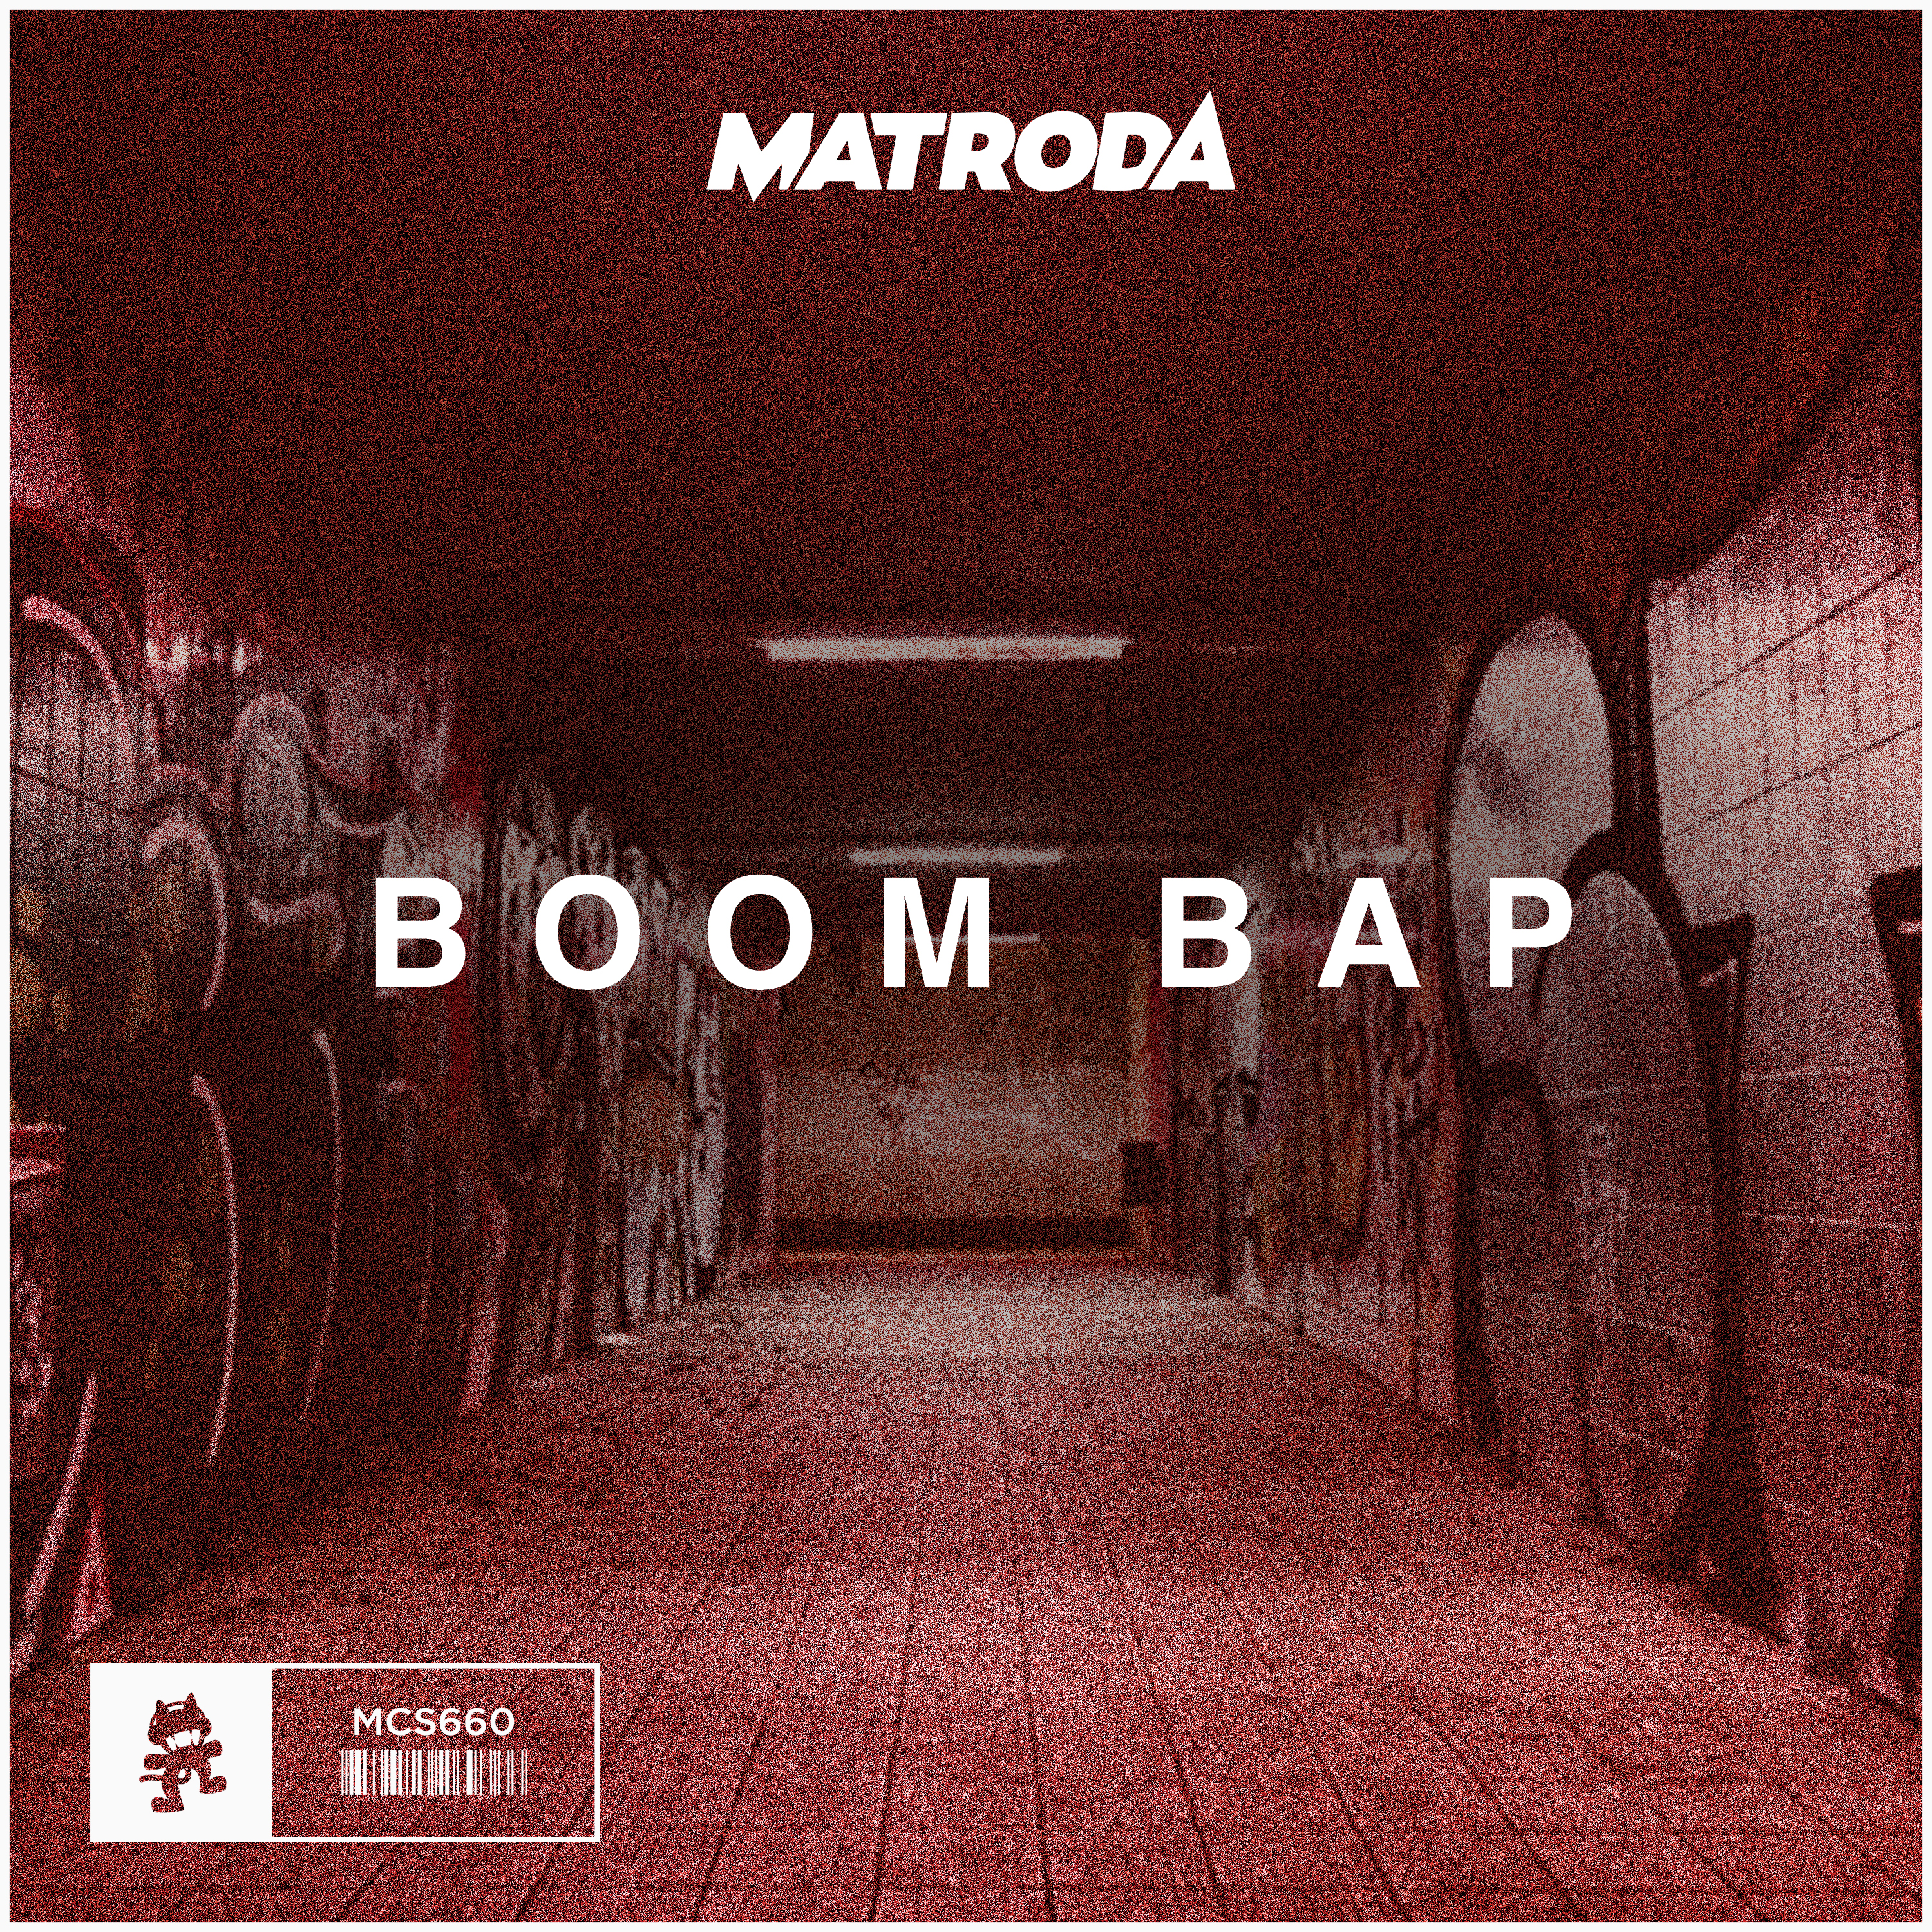 Matroda - Boom Bap Megathread : Monstercat